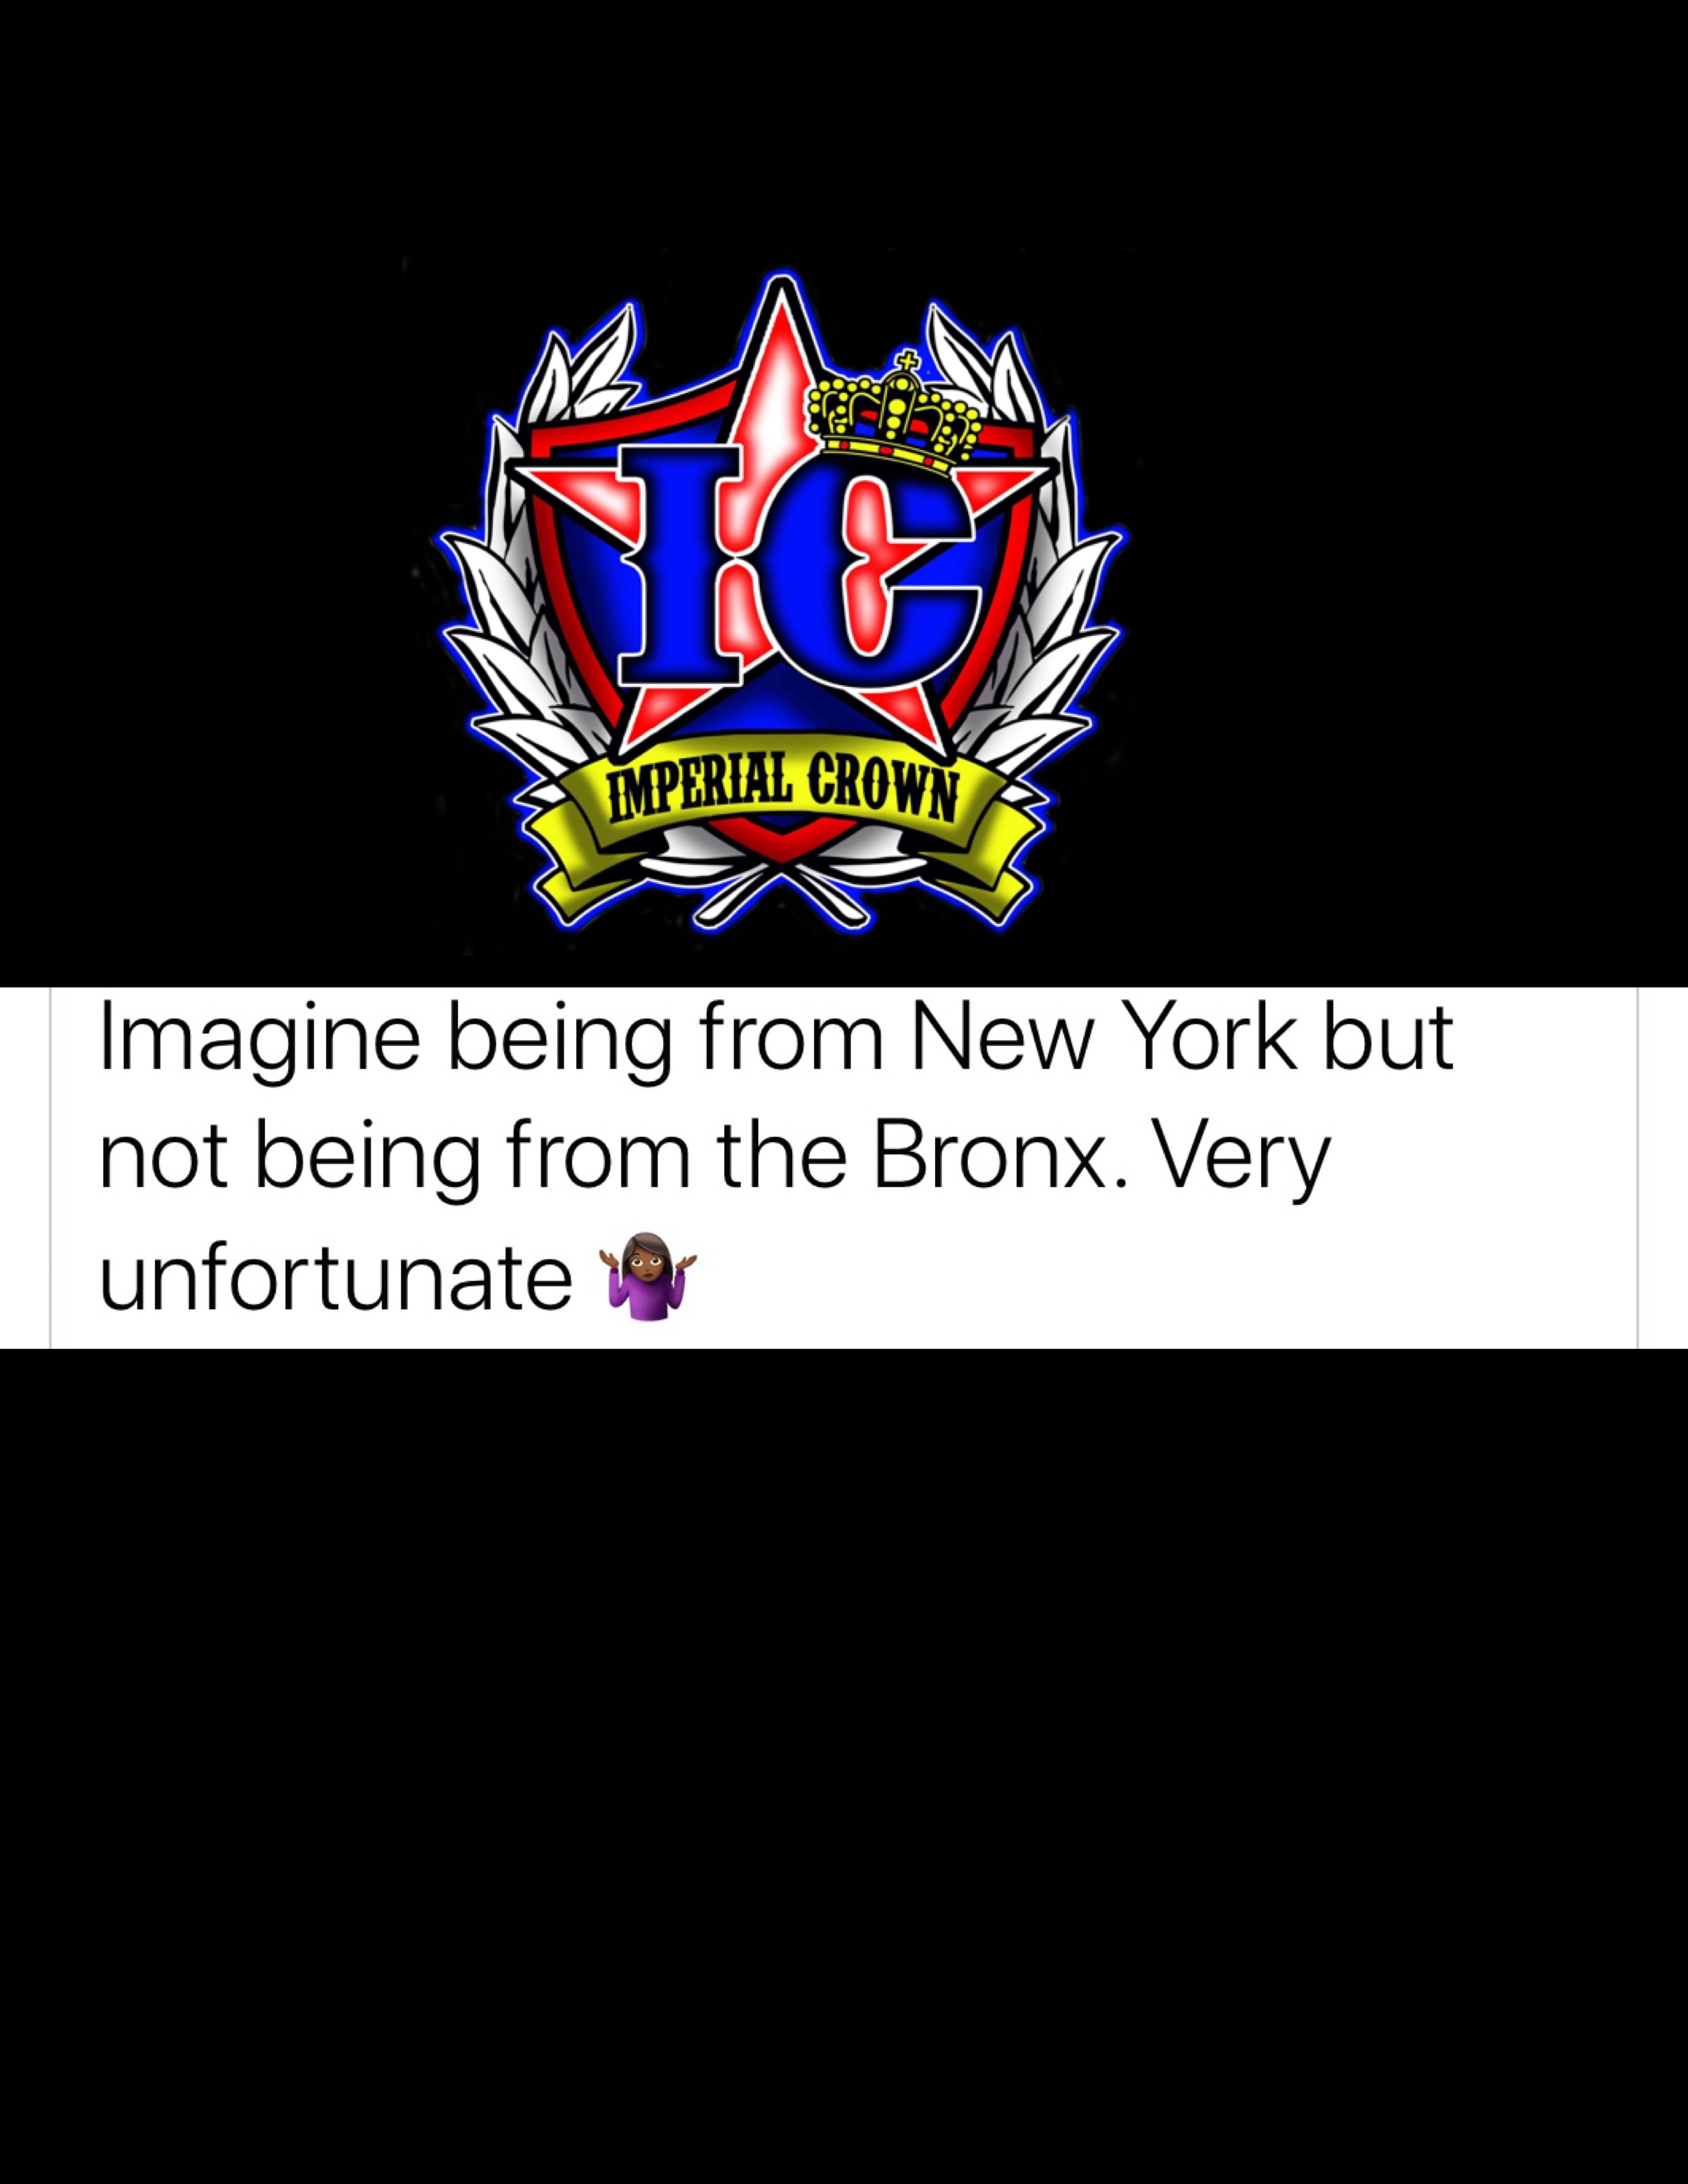 Imagine being from New York but not being from the Bronx